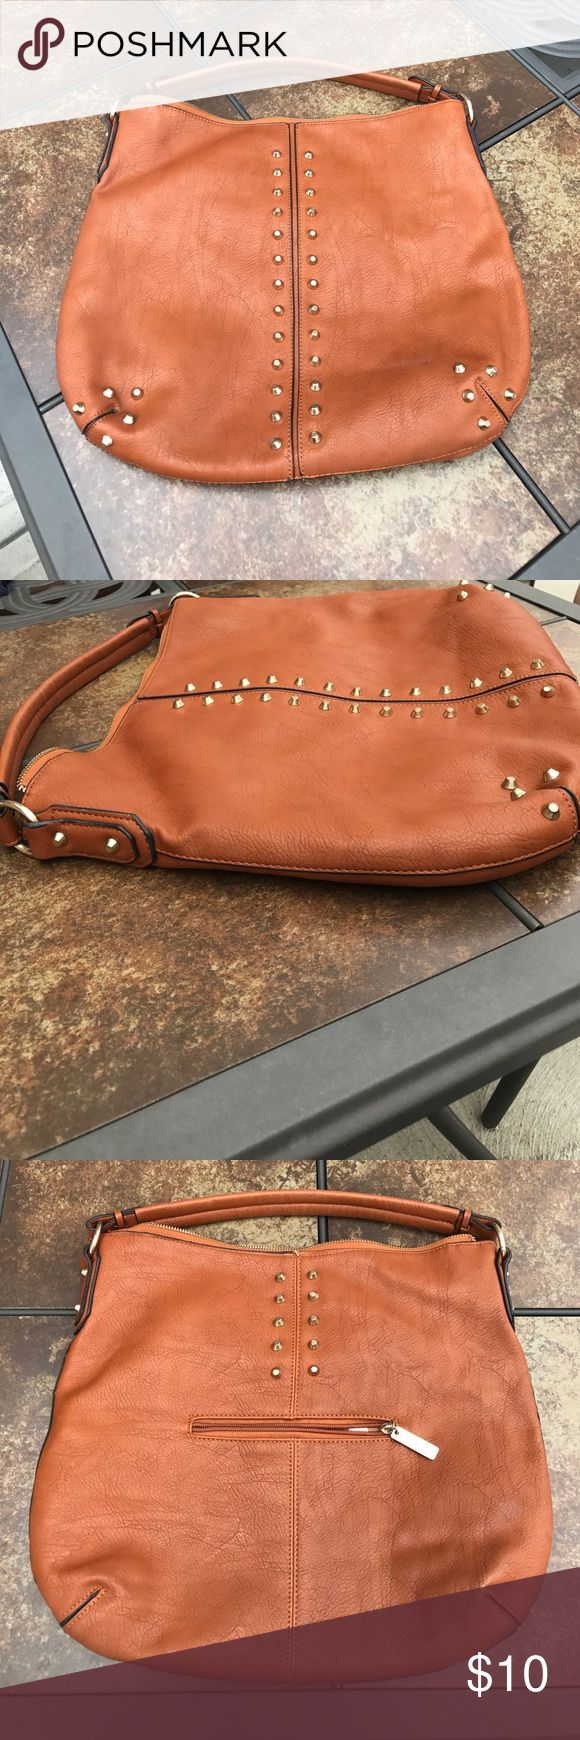 🔺 oversized shoulder bag 🔺 Pre-loved tan faux leather studded bag! Slight blemishes (inside of bag) from use, all zippers work great, no missing studs. Great sized bag, you can fit a good amount inside. Brand unknown, tj max find last summer🤗 Bags Shoulder Bags